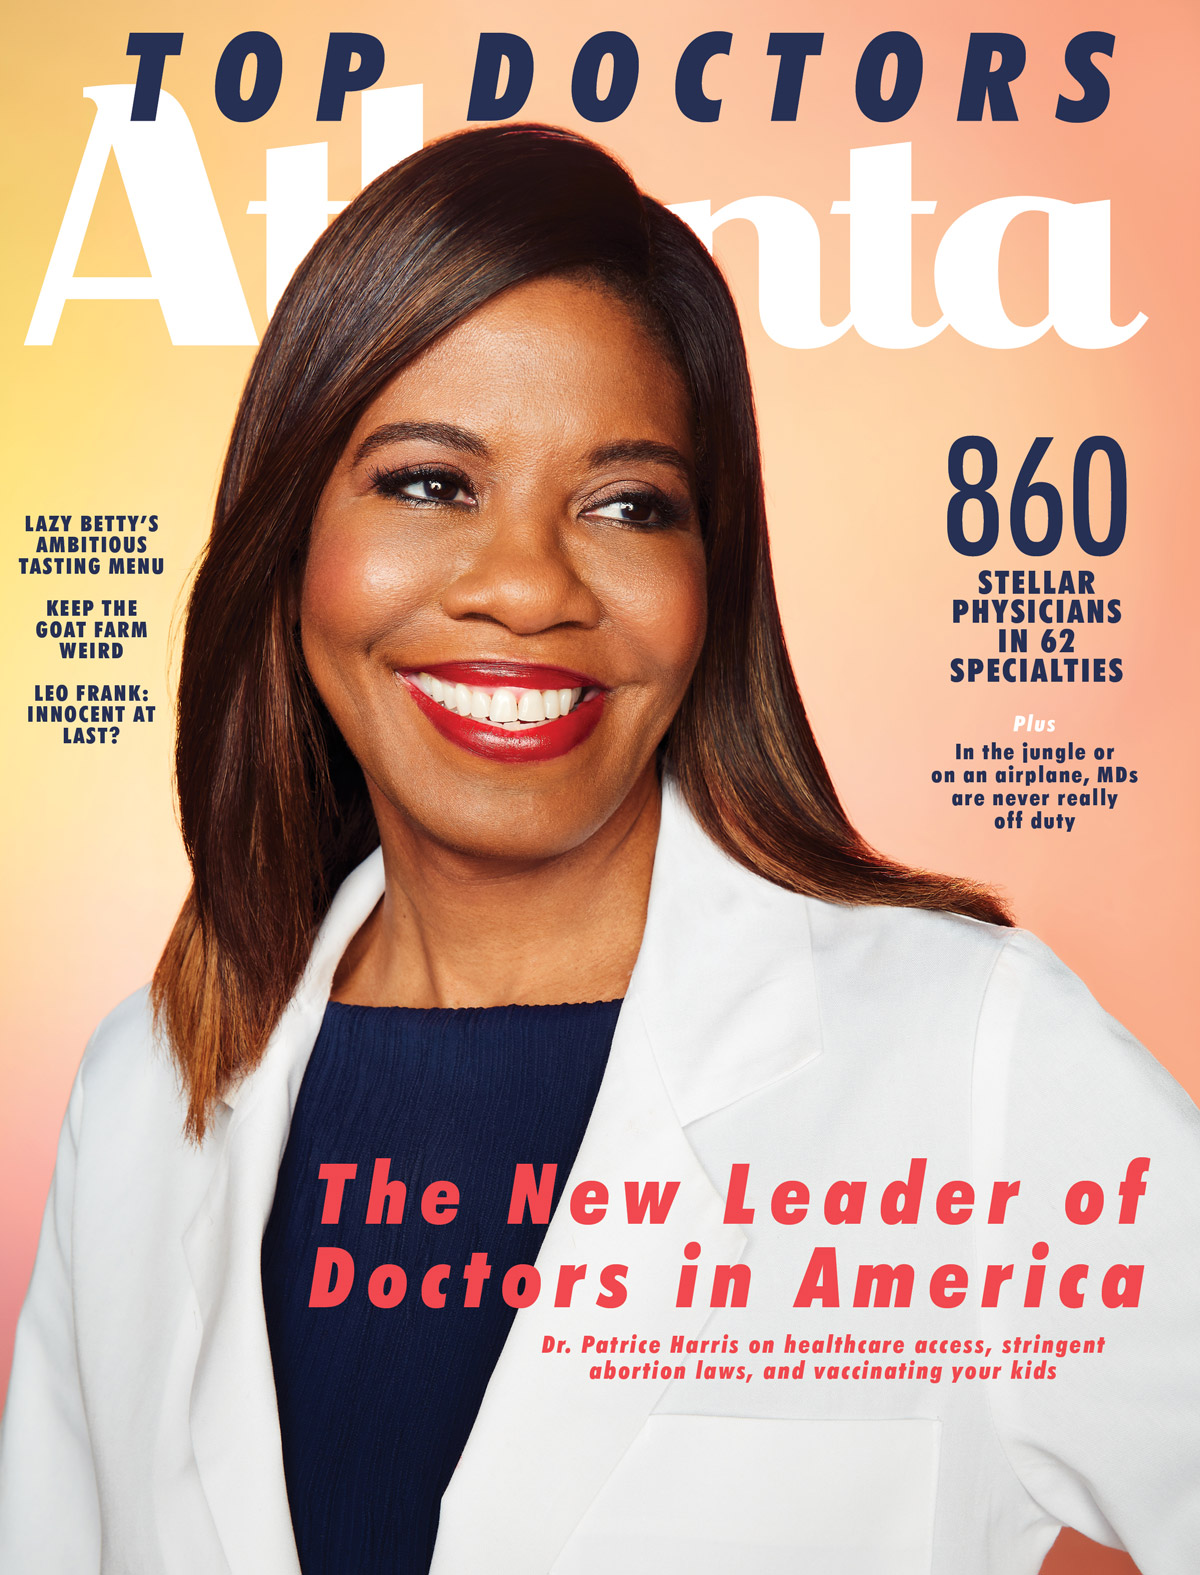 Atlanta Magazine July 2019 cover - Top Doctors